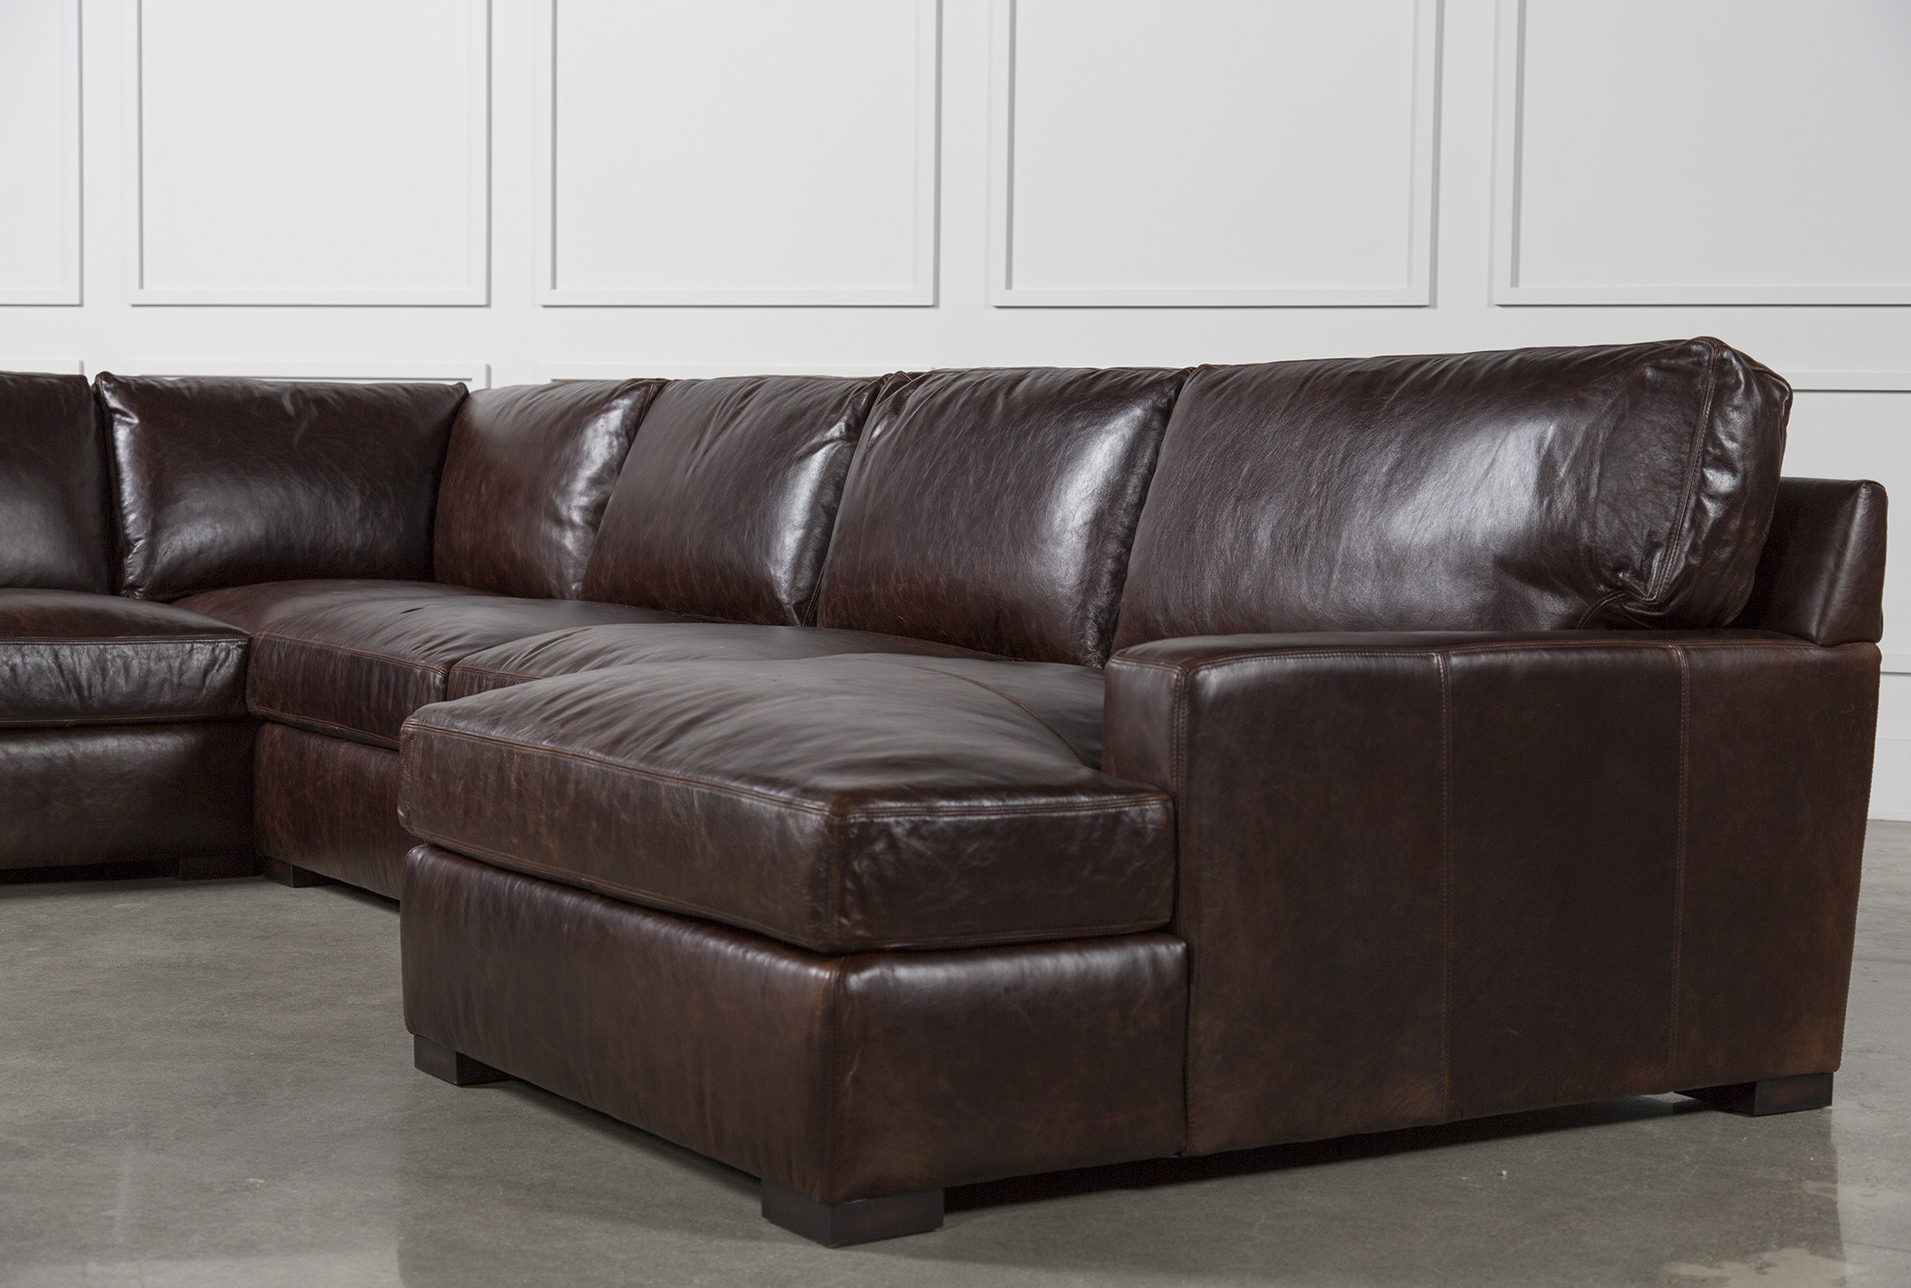 Widely Used Gordon 3 Piece Sectionals With Raf Chaise In Gordon 3 Piece Sectional W/laf Chaise (View 20 of 20)